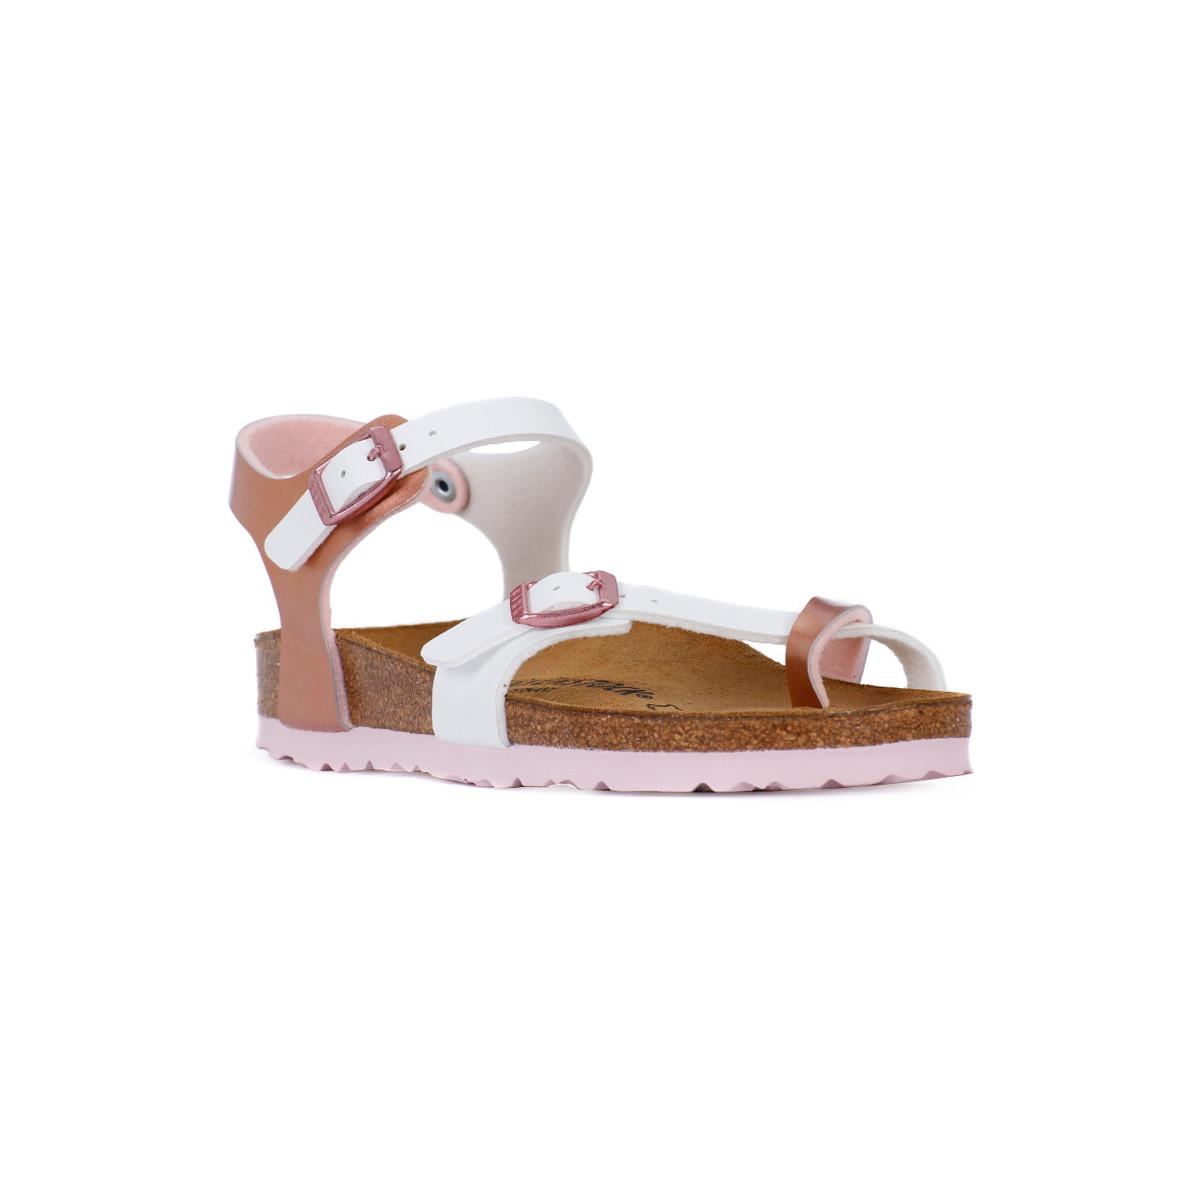 d4fb7863be65 Birkenstock Taormina Soft Women s Mules   Casual Shoes In Pink in ...